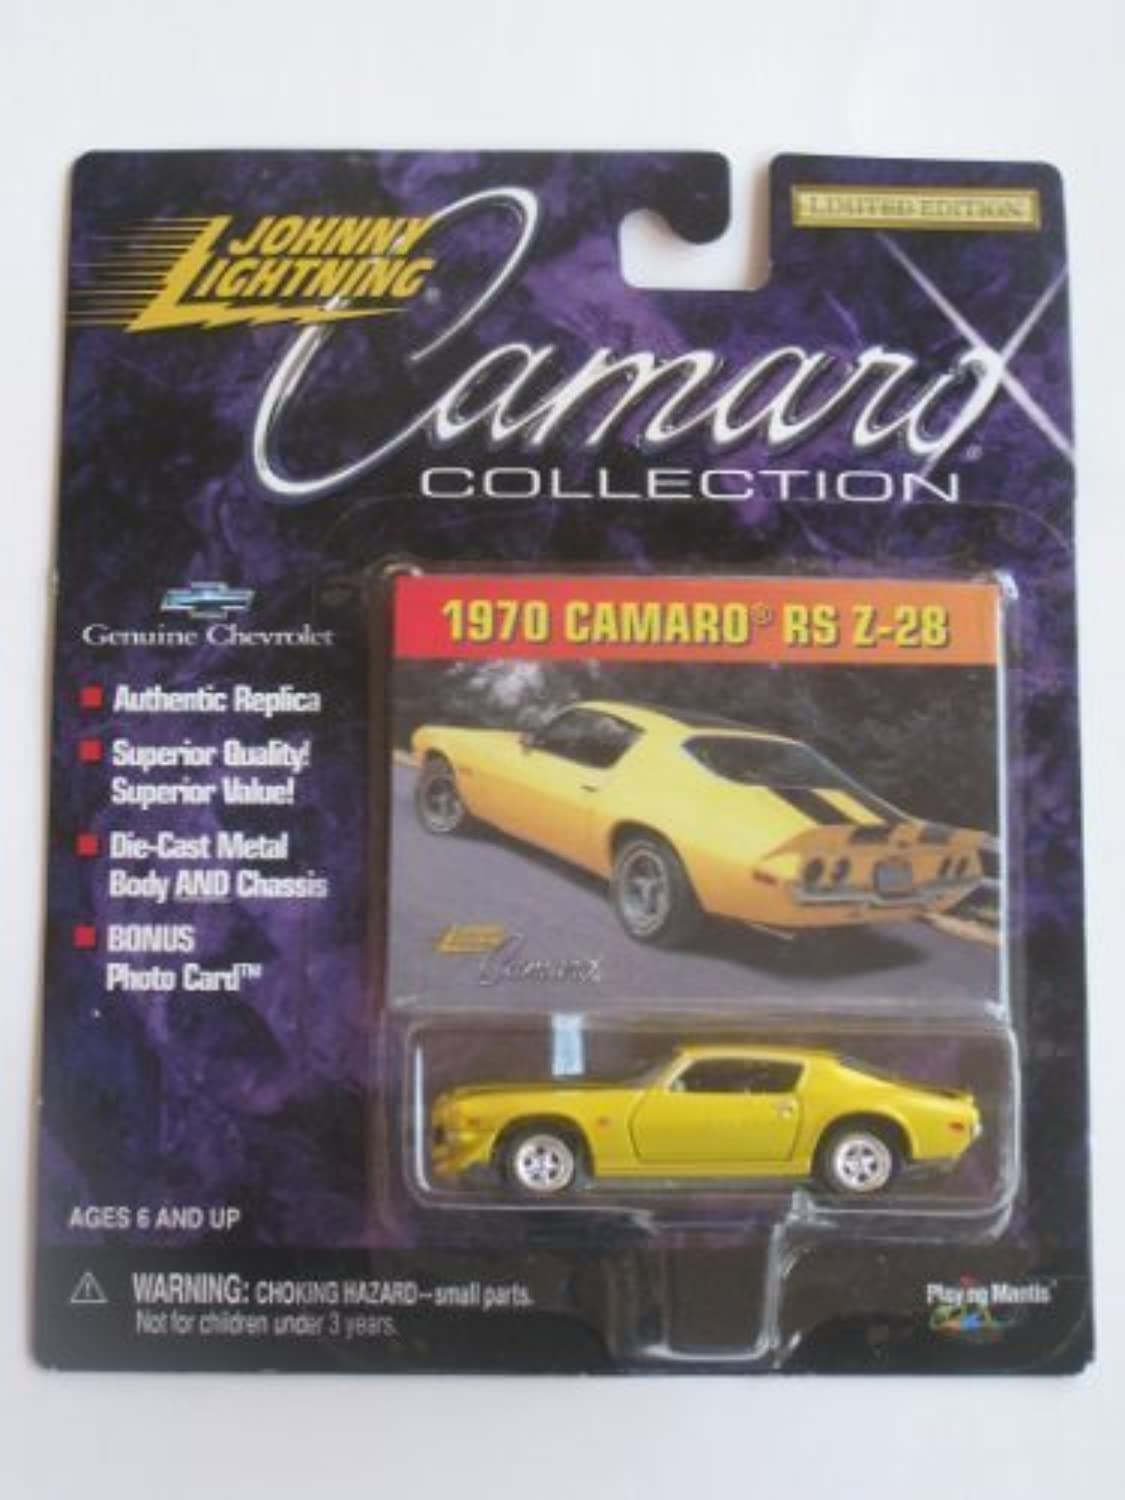 Johnny Lightning Camaro Collection 1969 COPO Camaro 427 by Johnny Lightning